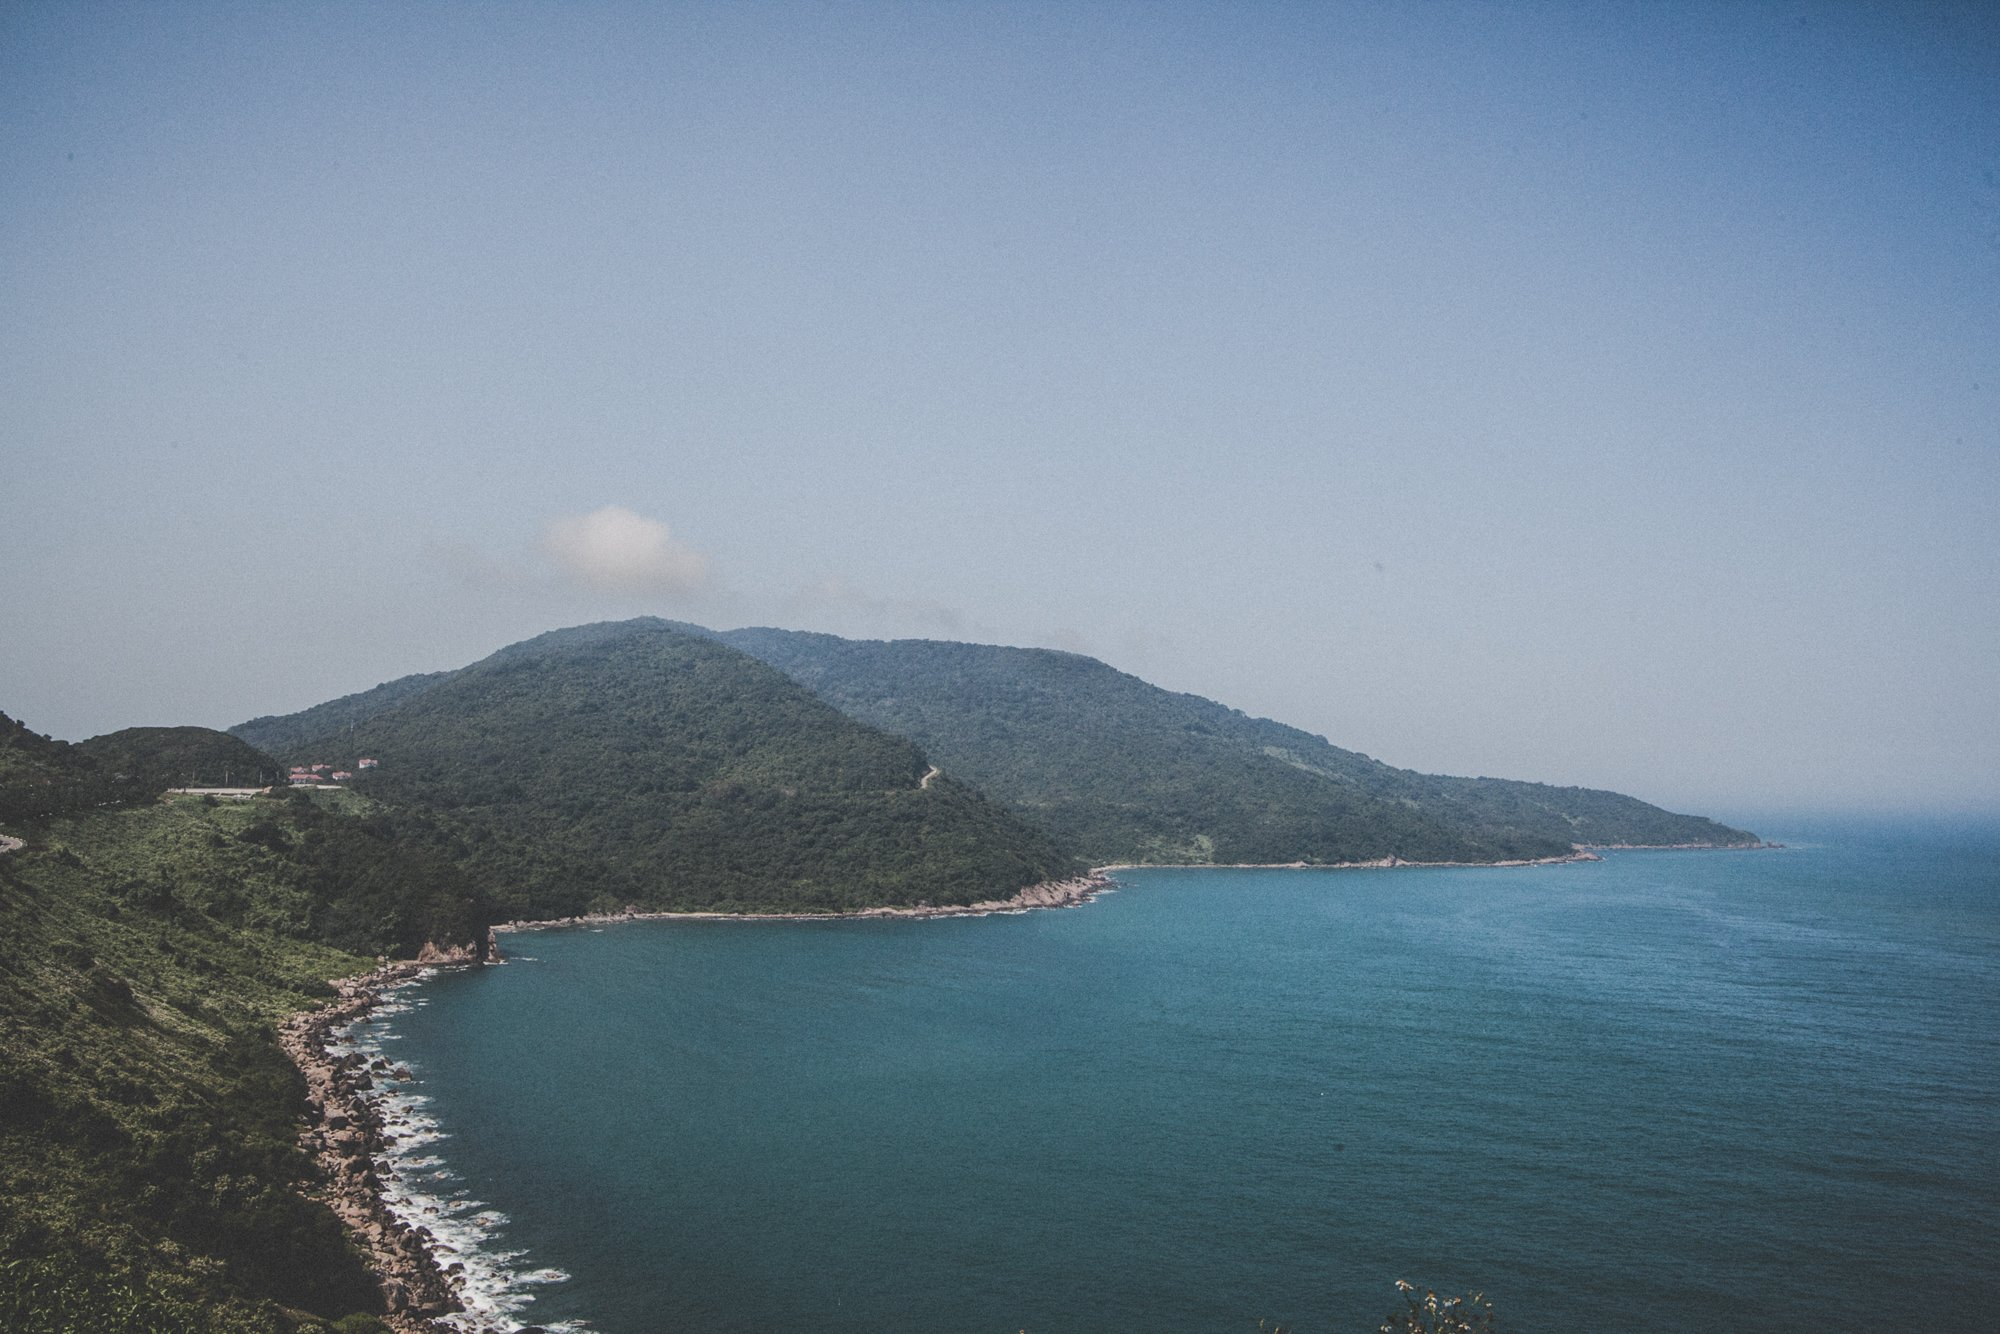 Ride a motorbike our to sin tra peninsula in Da nang for a day of wild exploration.